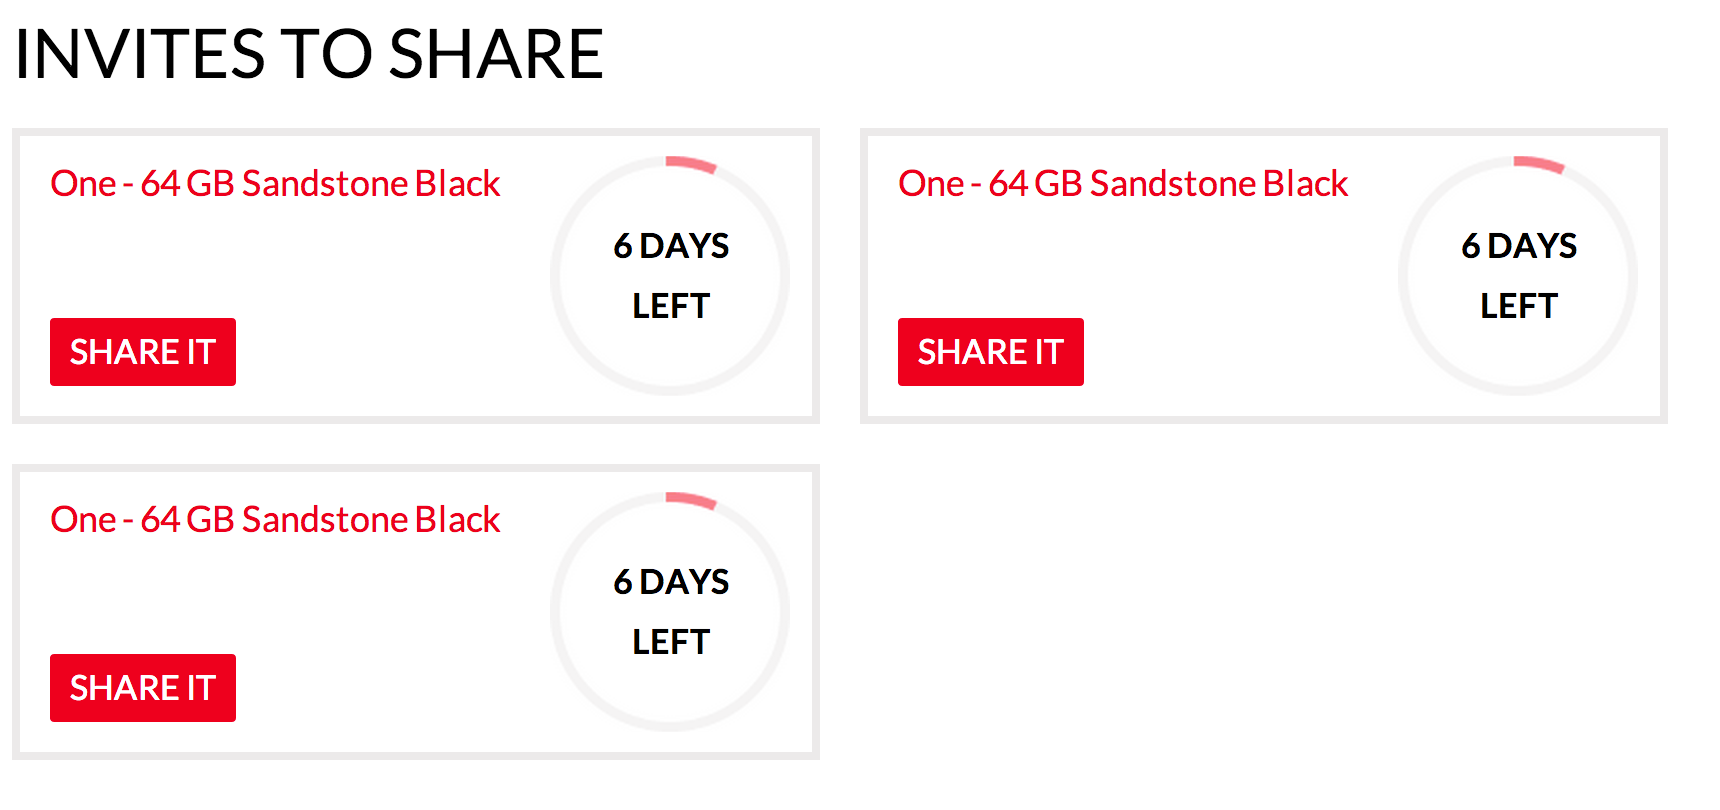 3 Invites To Giveaway For OnePlus One